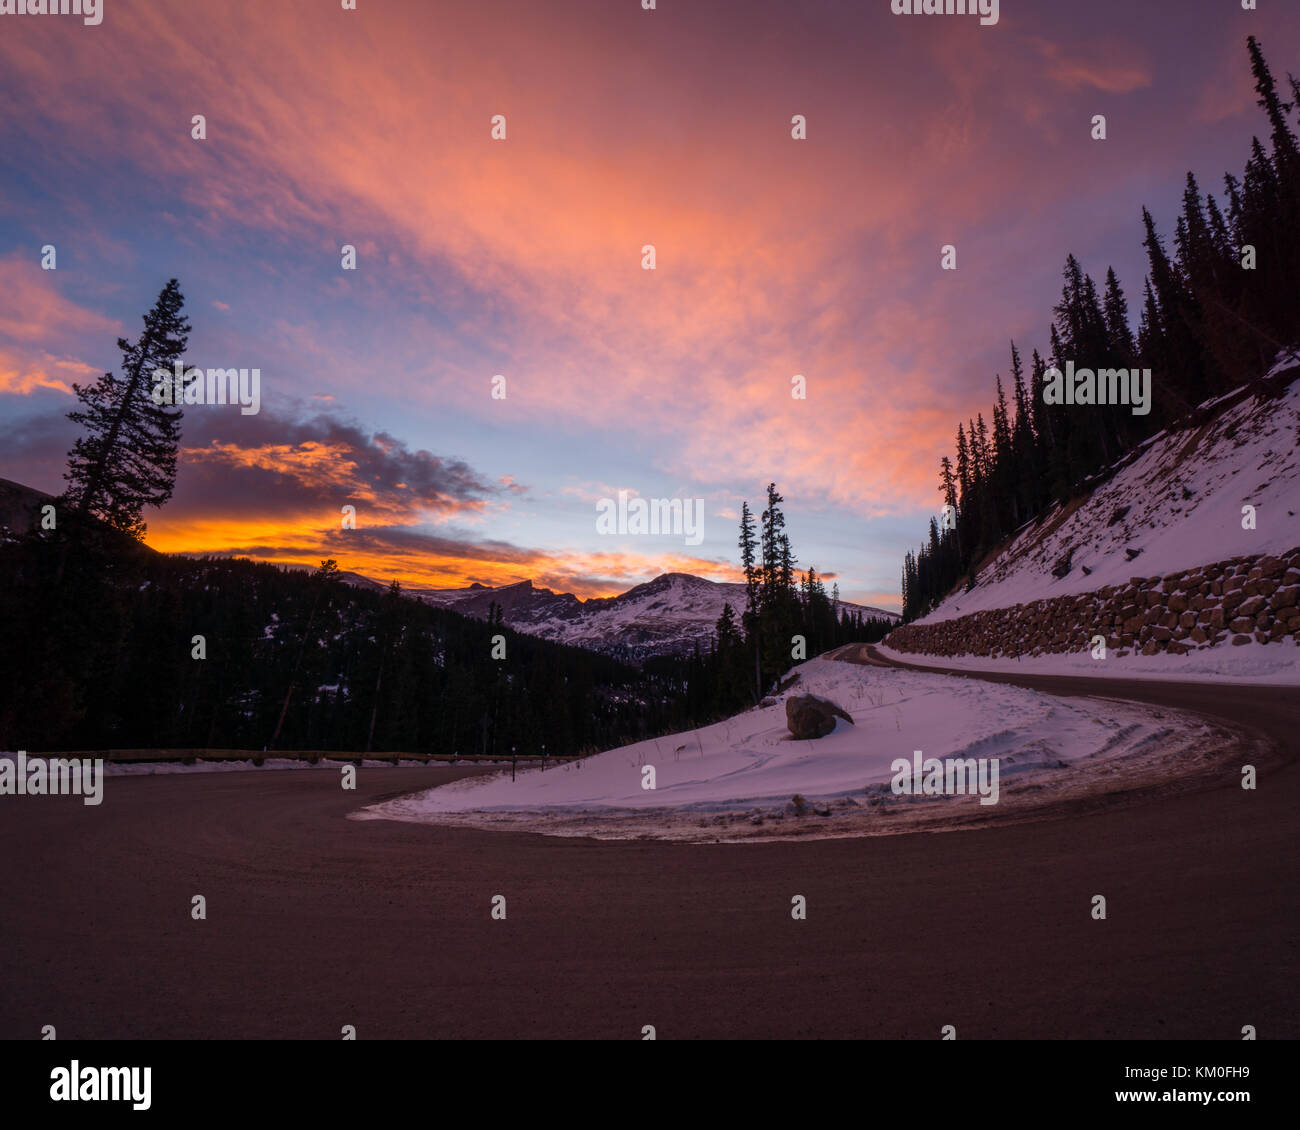 A snowy sunrise in early winter, Georgetown, Colorado. - Stock Image